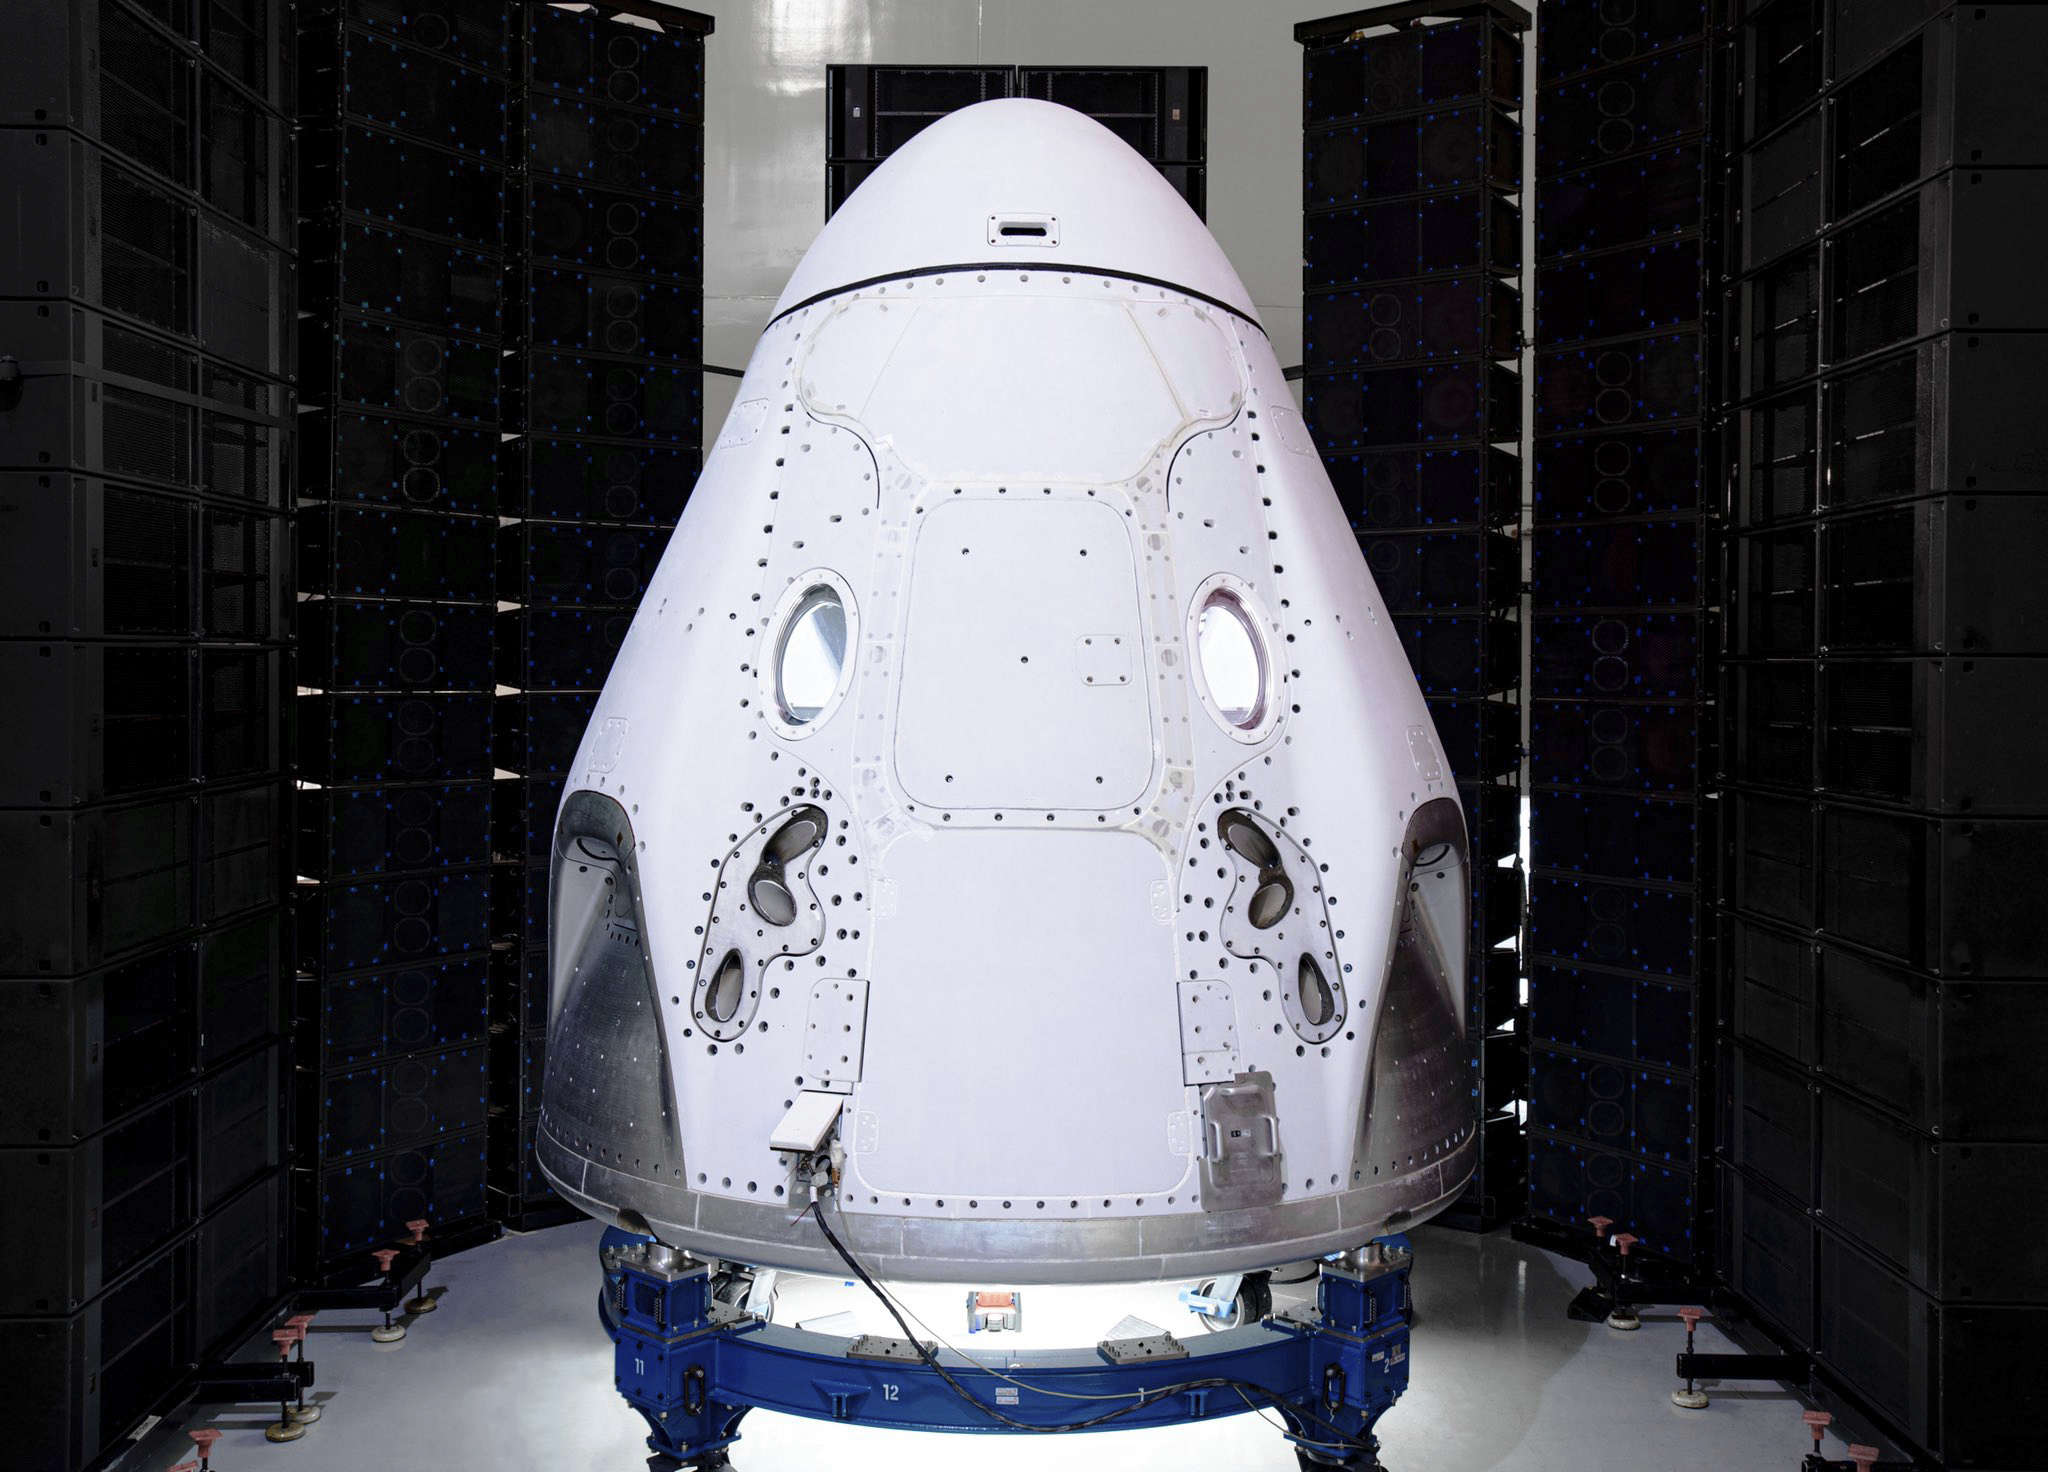 The new tourists would be carried on SpaceX's Crew Dragon capsule.